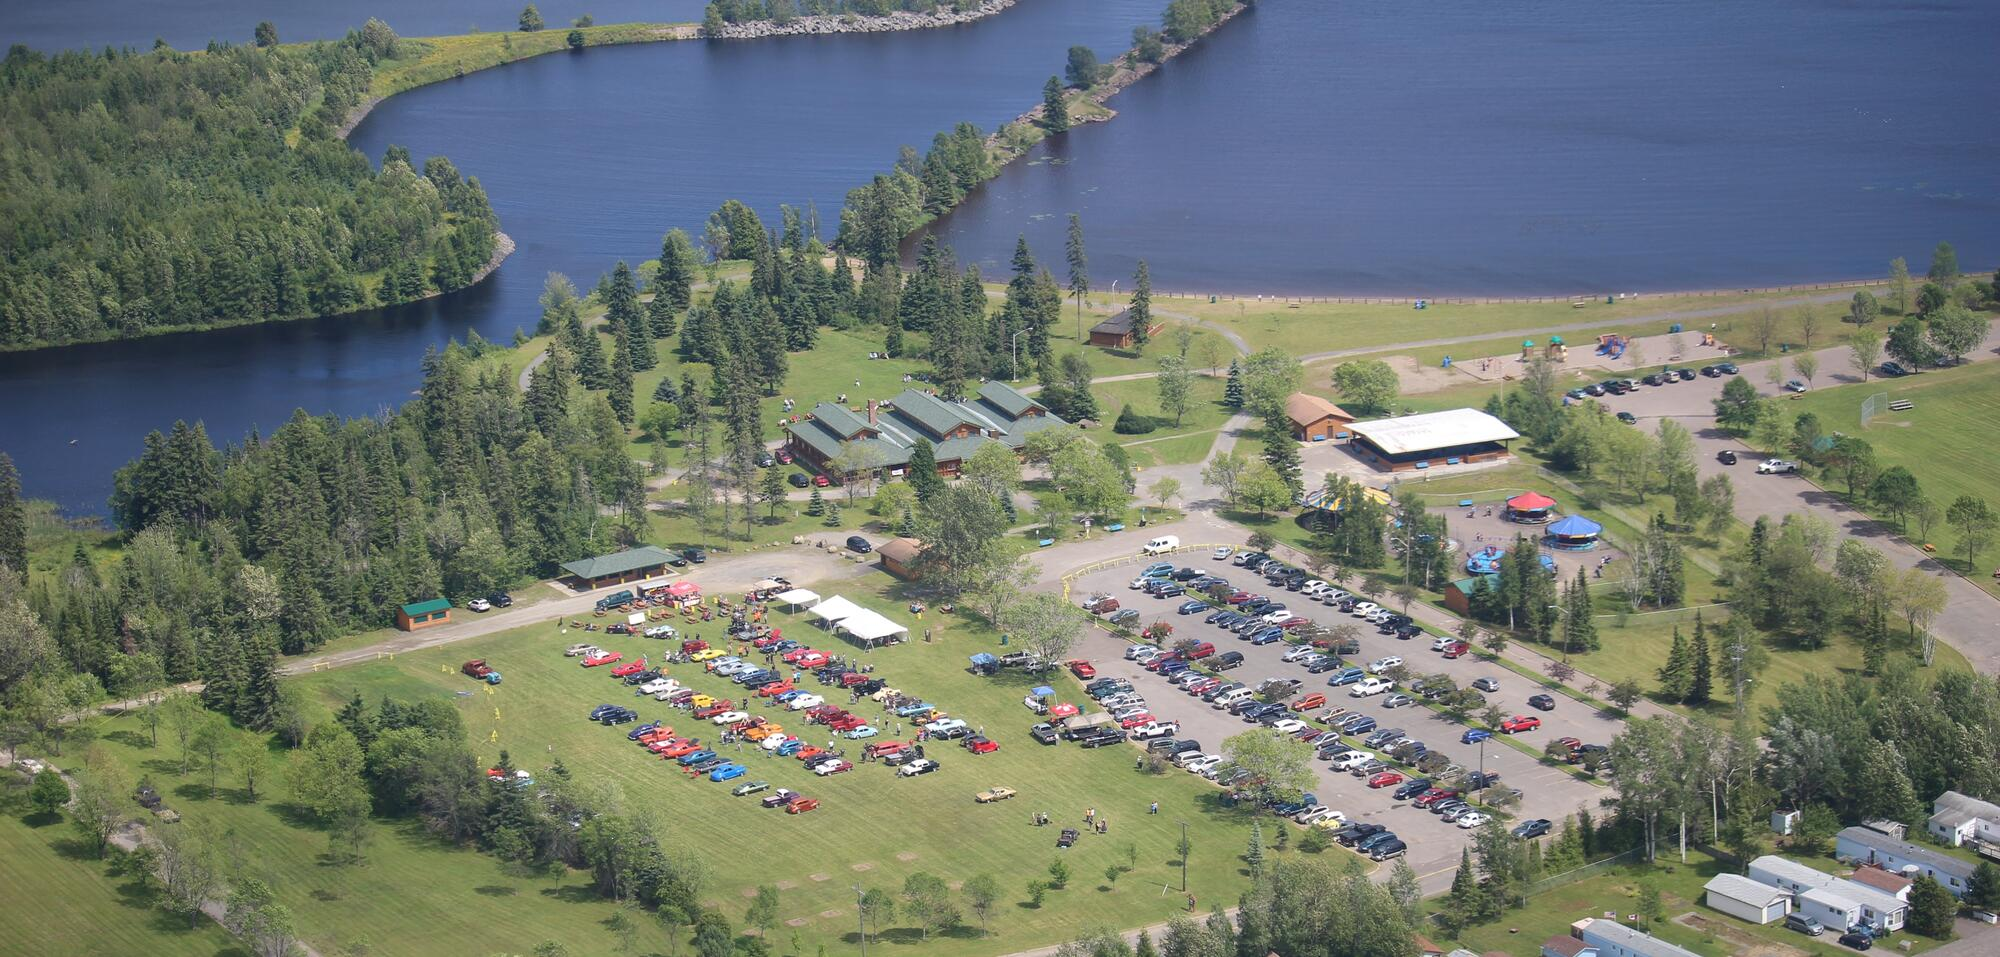 Best Camping In Ontario >> Chippewa Park, A Family Fun Destination | Northern Ontario Travel